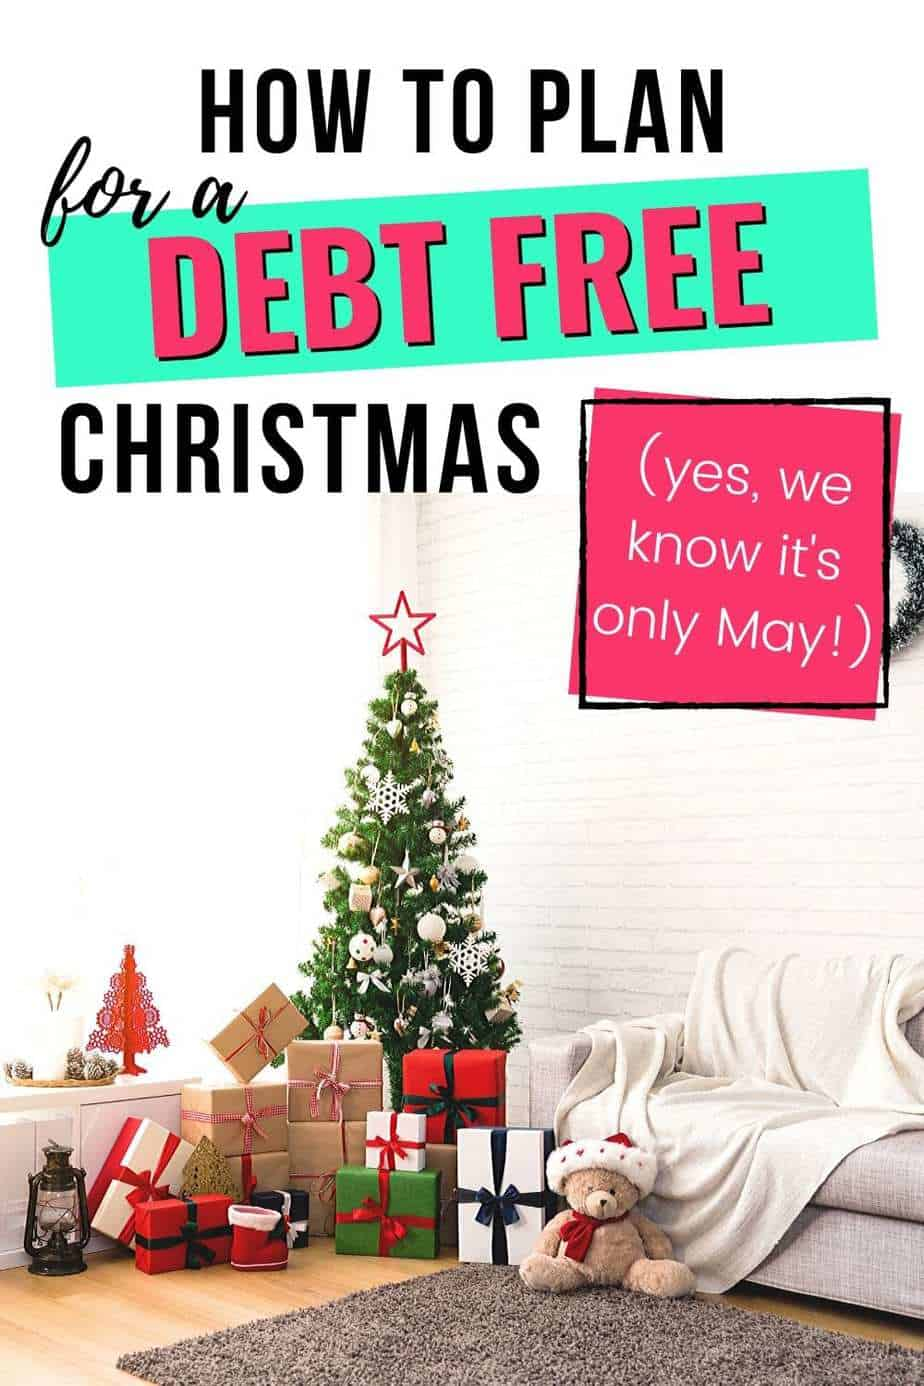 How to plan a debt free Christmas